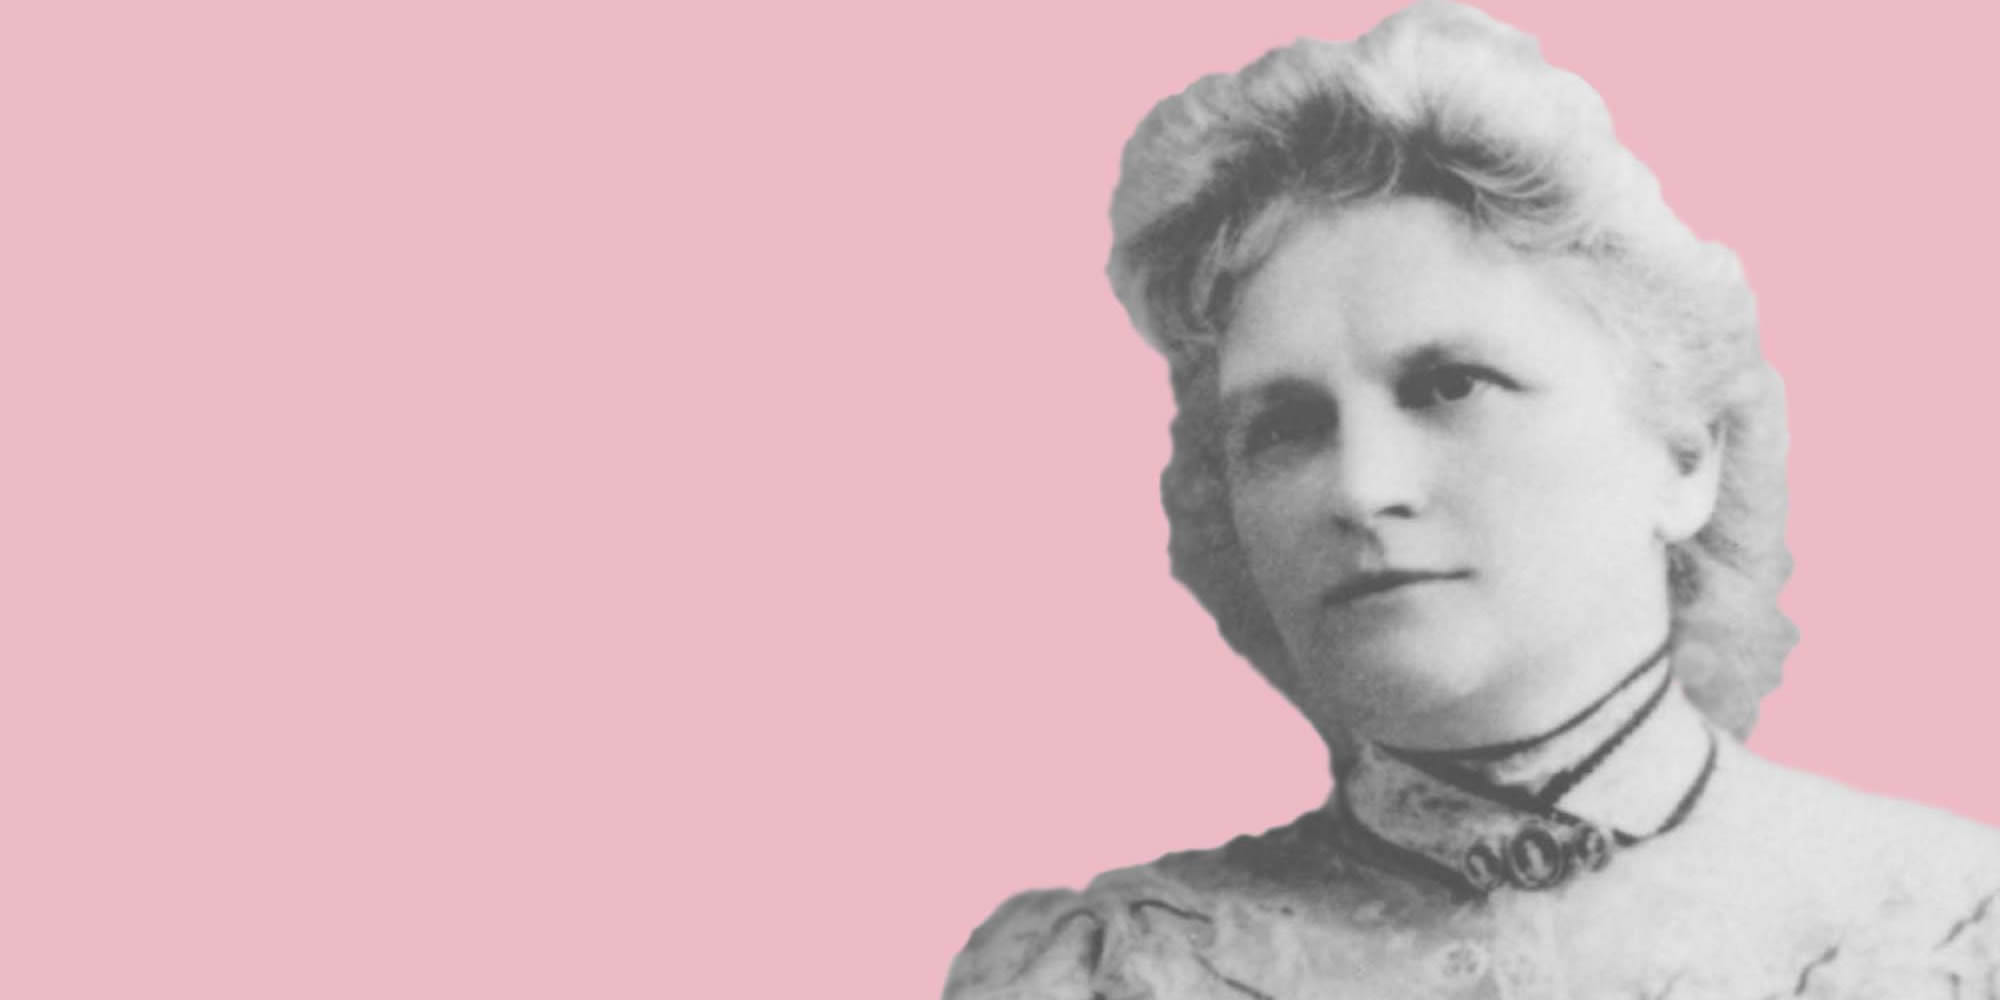 kate chopin and charles w chesnutt • the annotated text of kate chopin's modernist novel of marital  charles w chesnutt 50 out of 5 stars 1 kindle edition £6  w w norton & company.